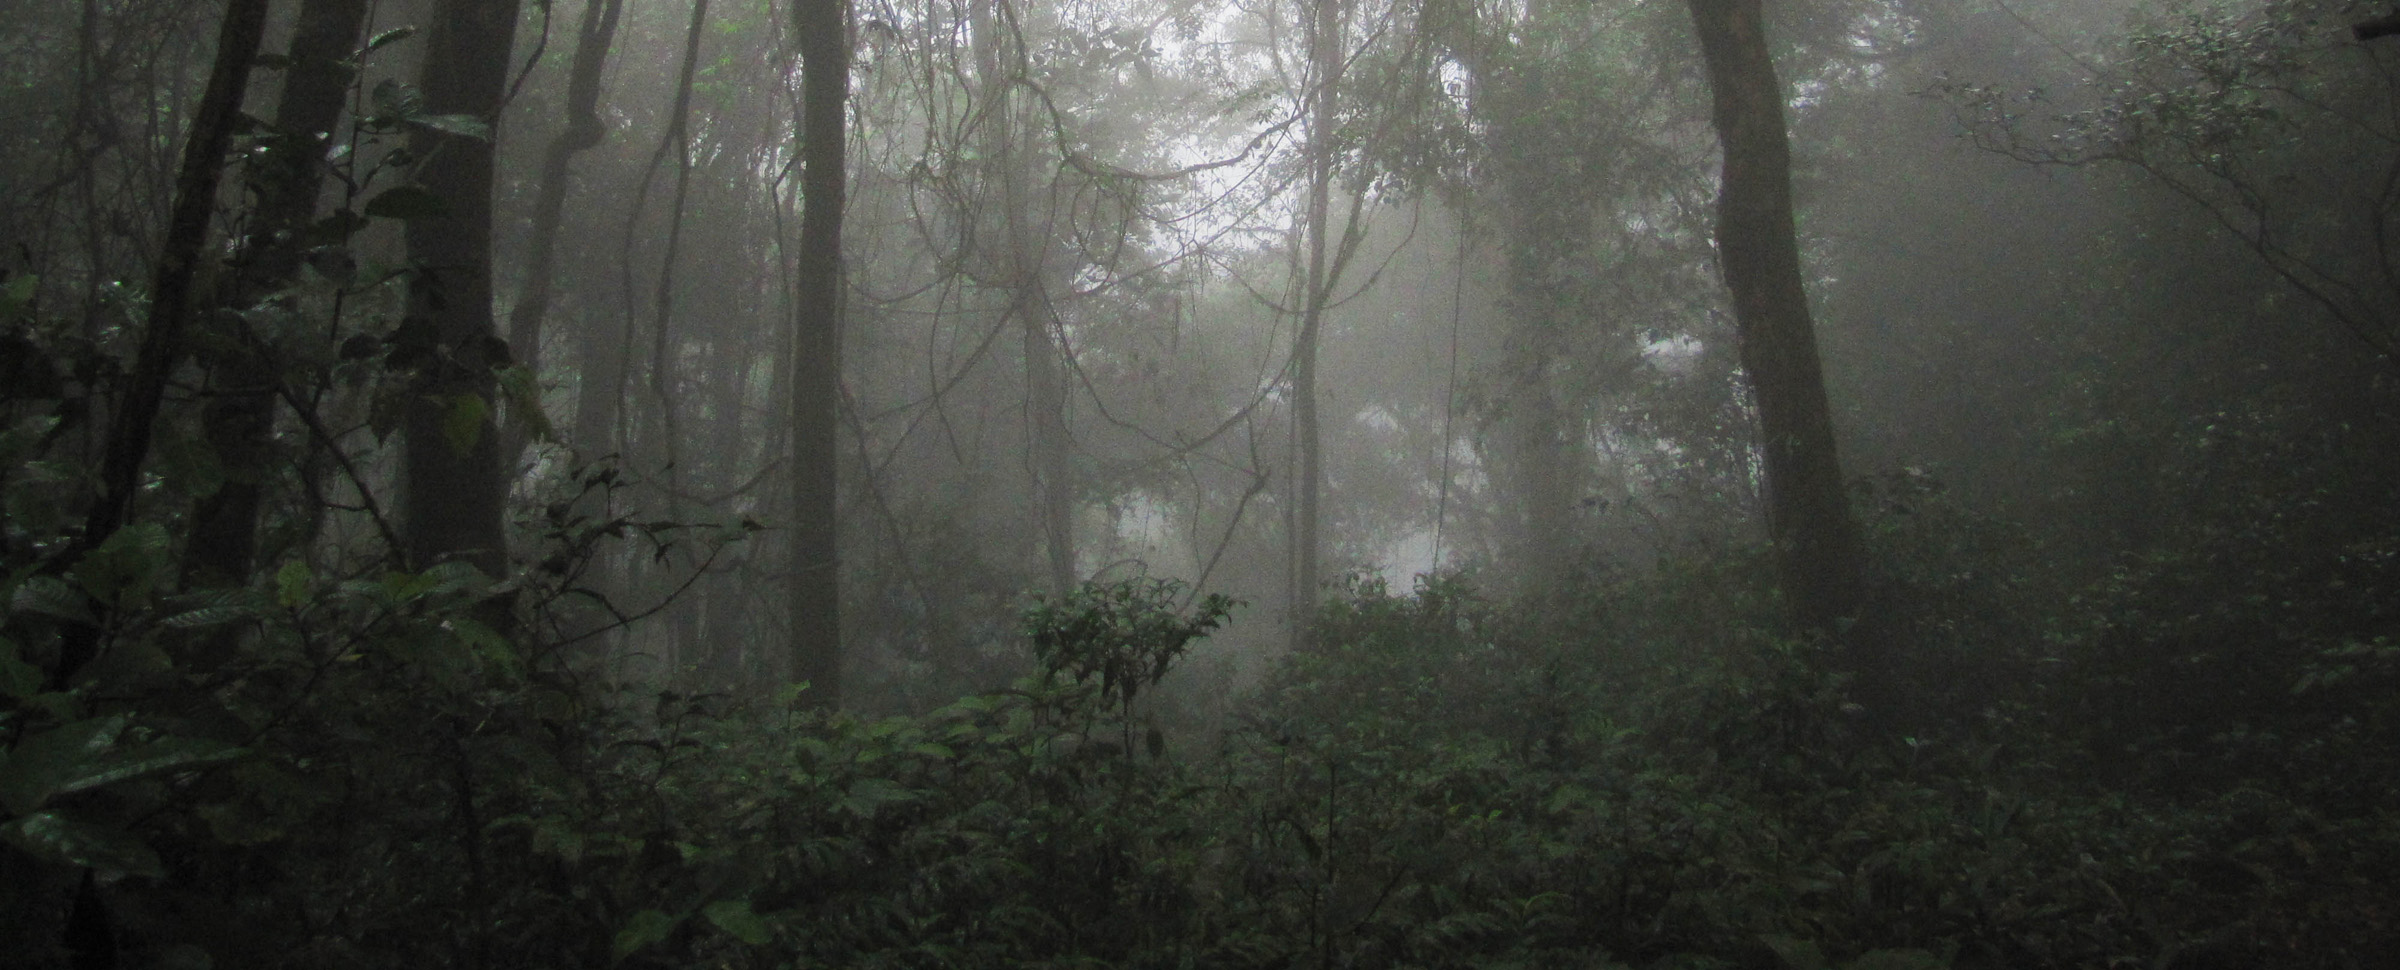 Forest in Equatorial Guinea - by NathanaelStanek